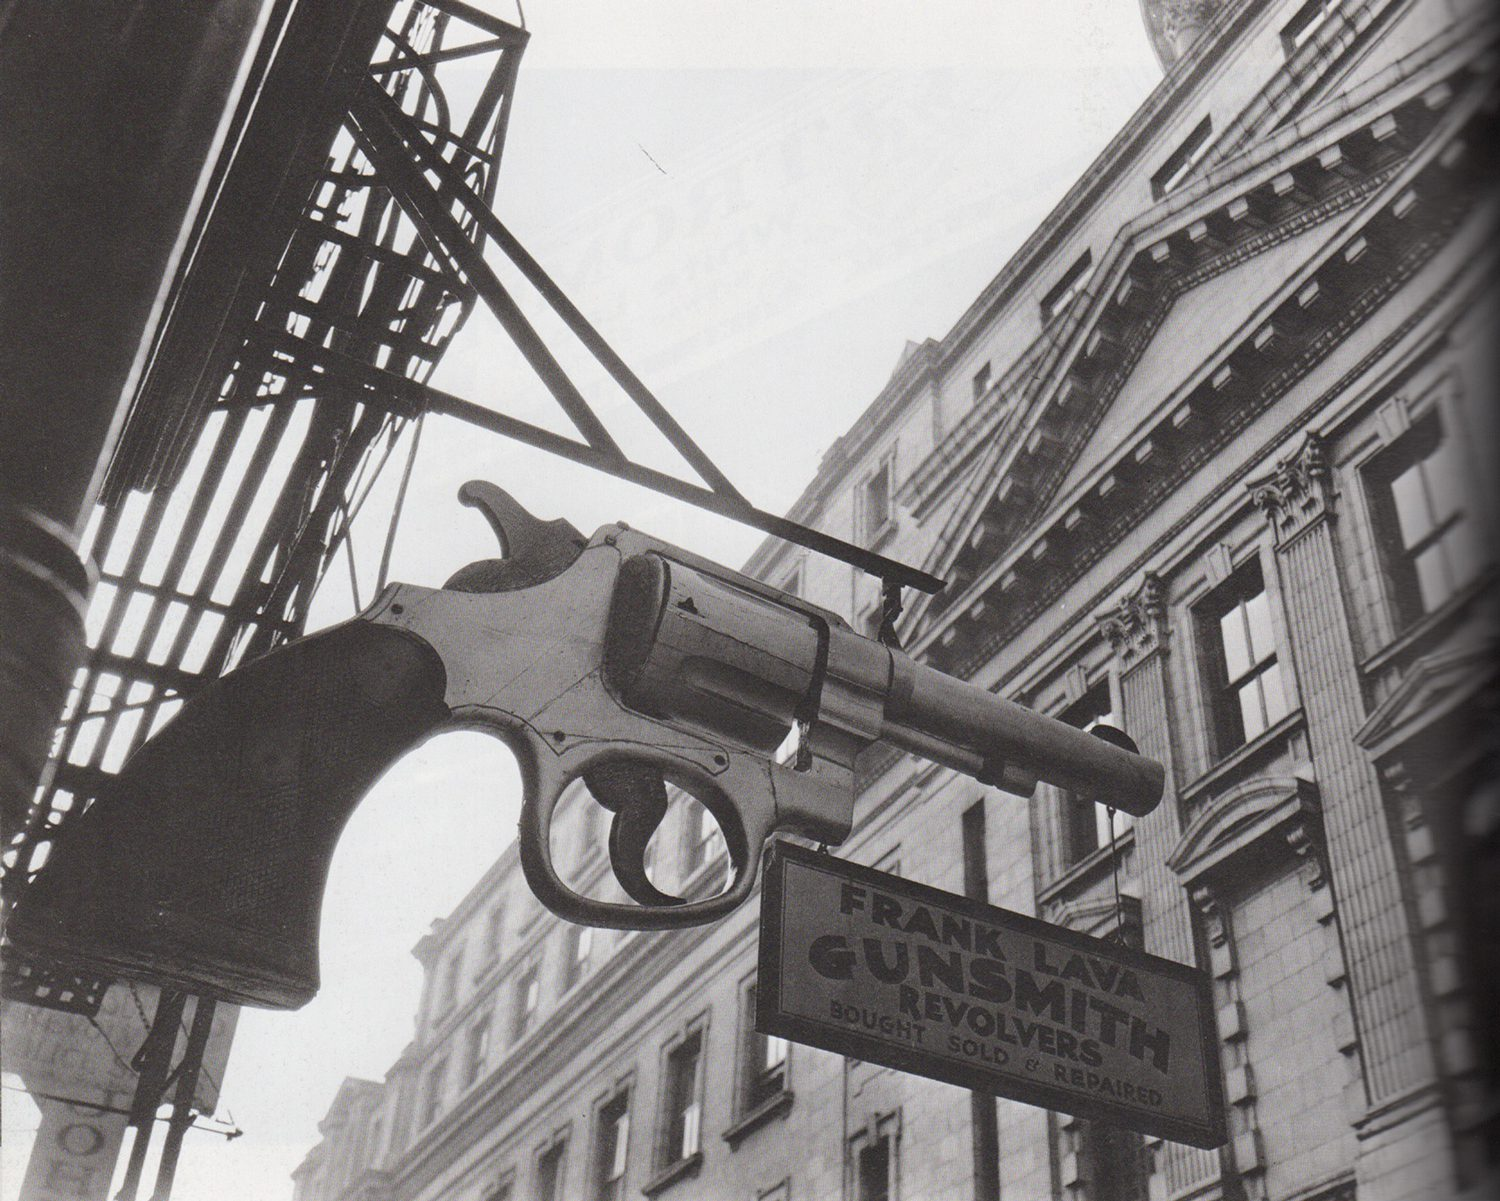 Gunsmith and Police Department, 6 Centre Market Place, Manhattan.